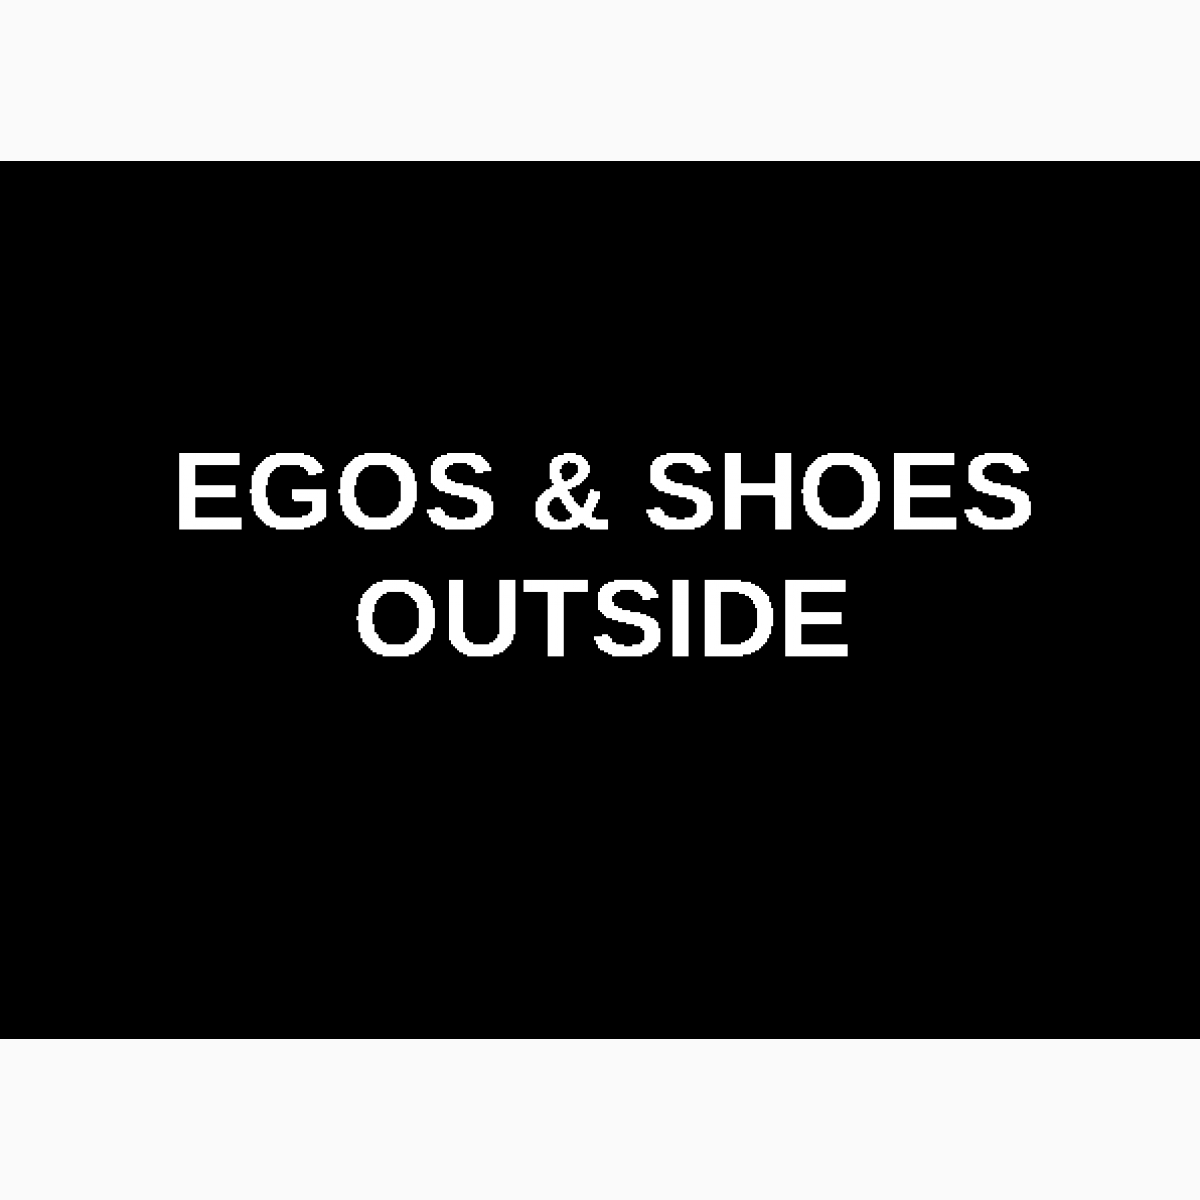 Fussmatte egos & shoes outside